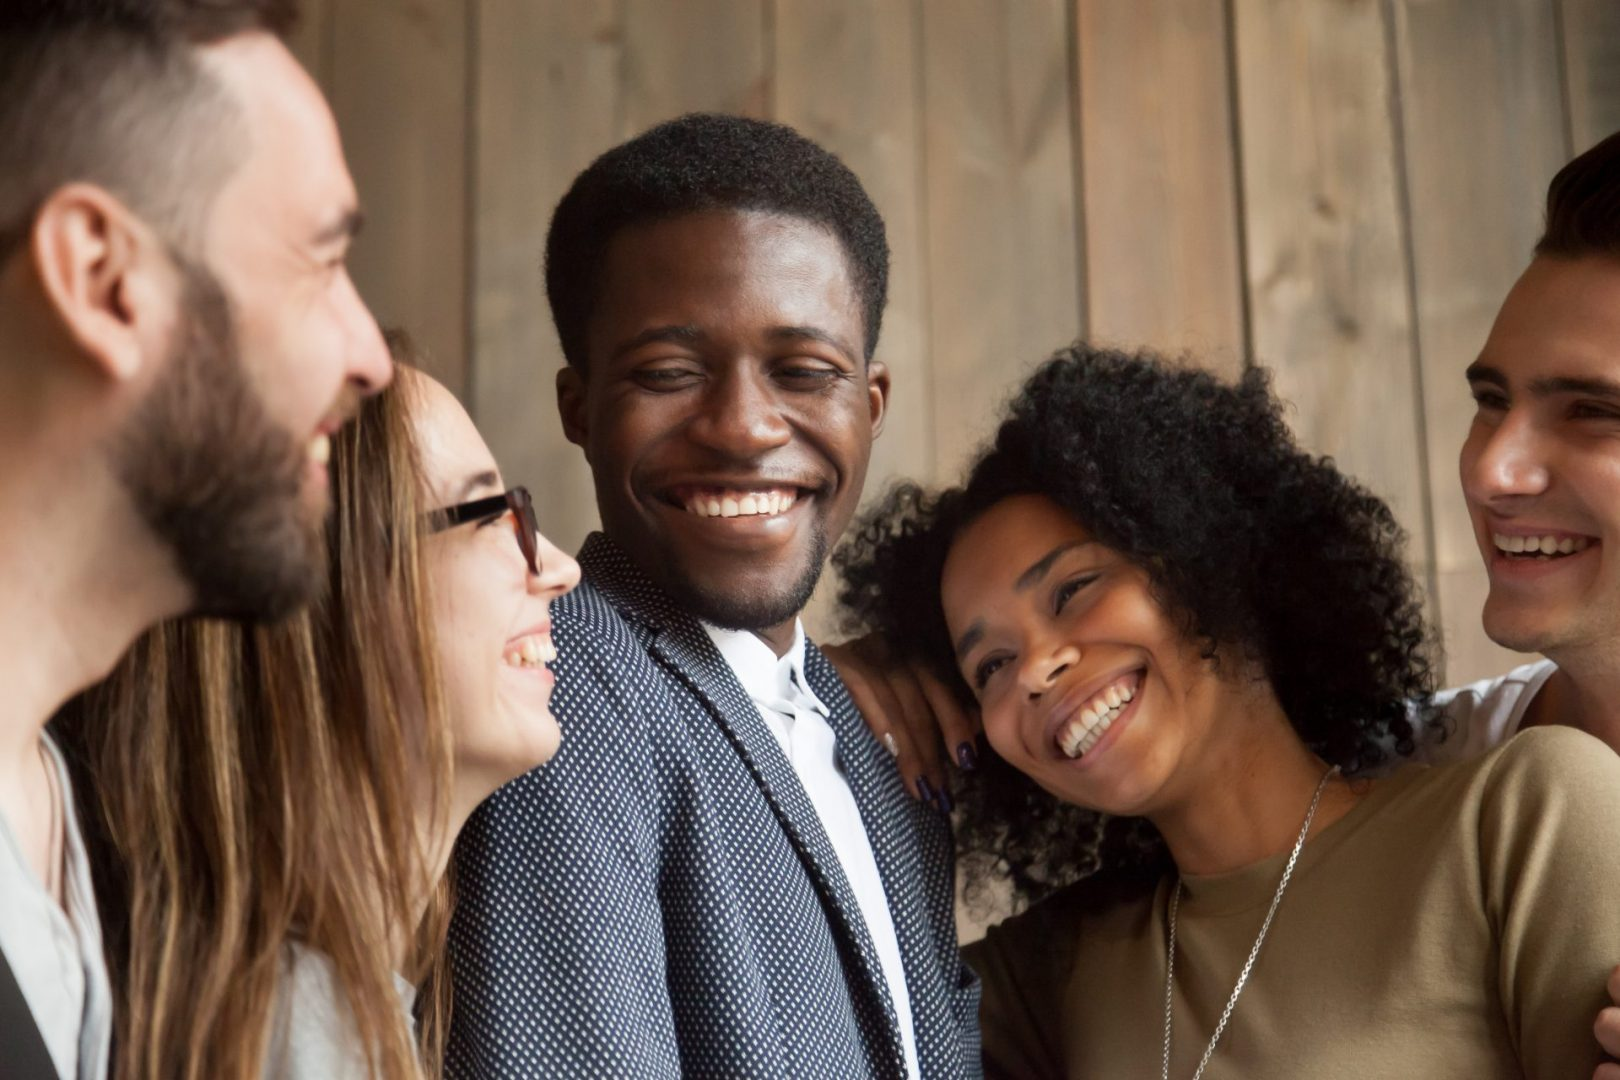 group of friends laughing together - social wellness month